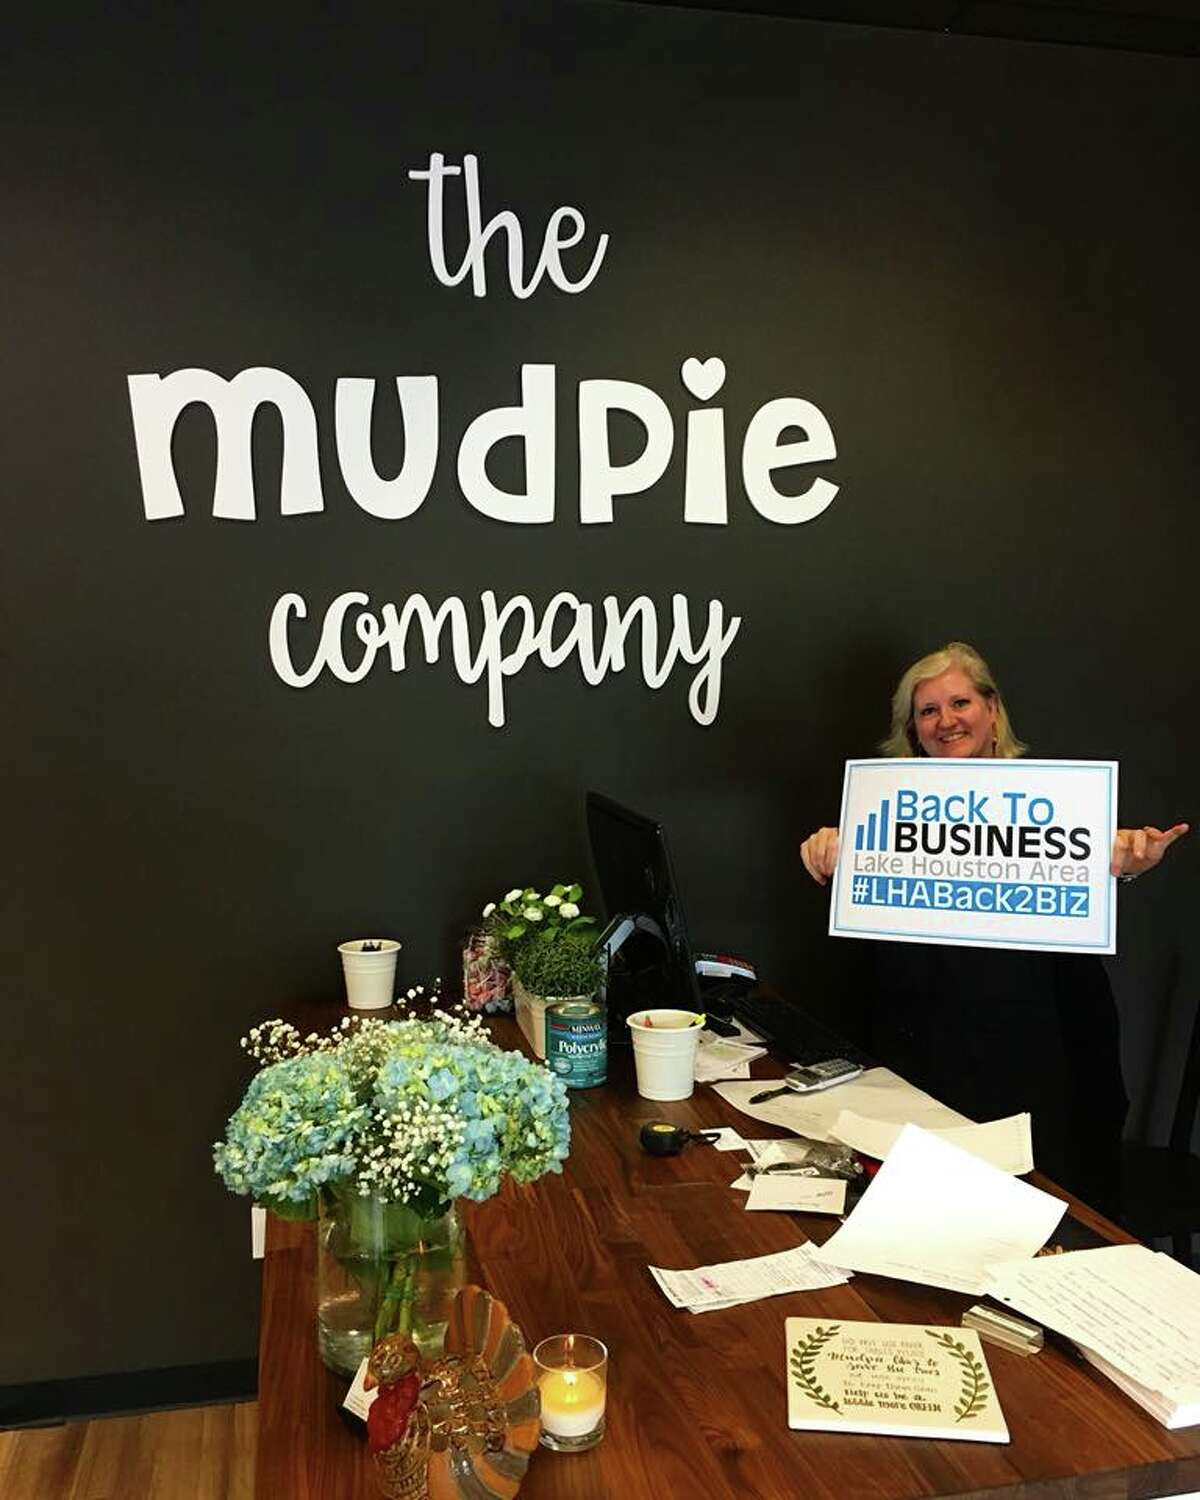 The Mudpie Company has reopened.